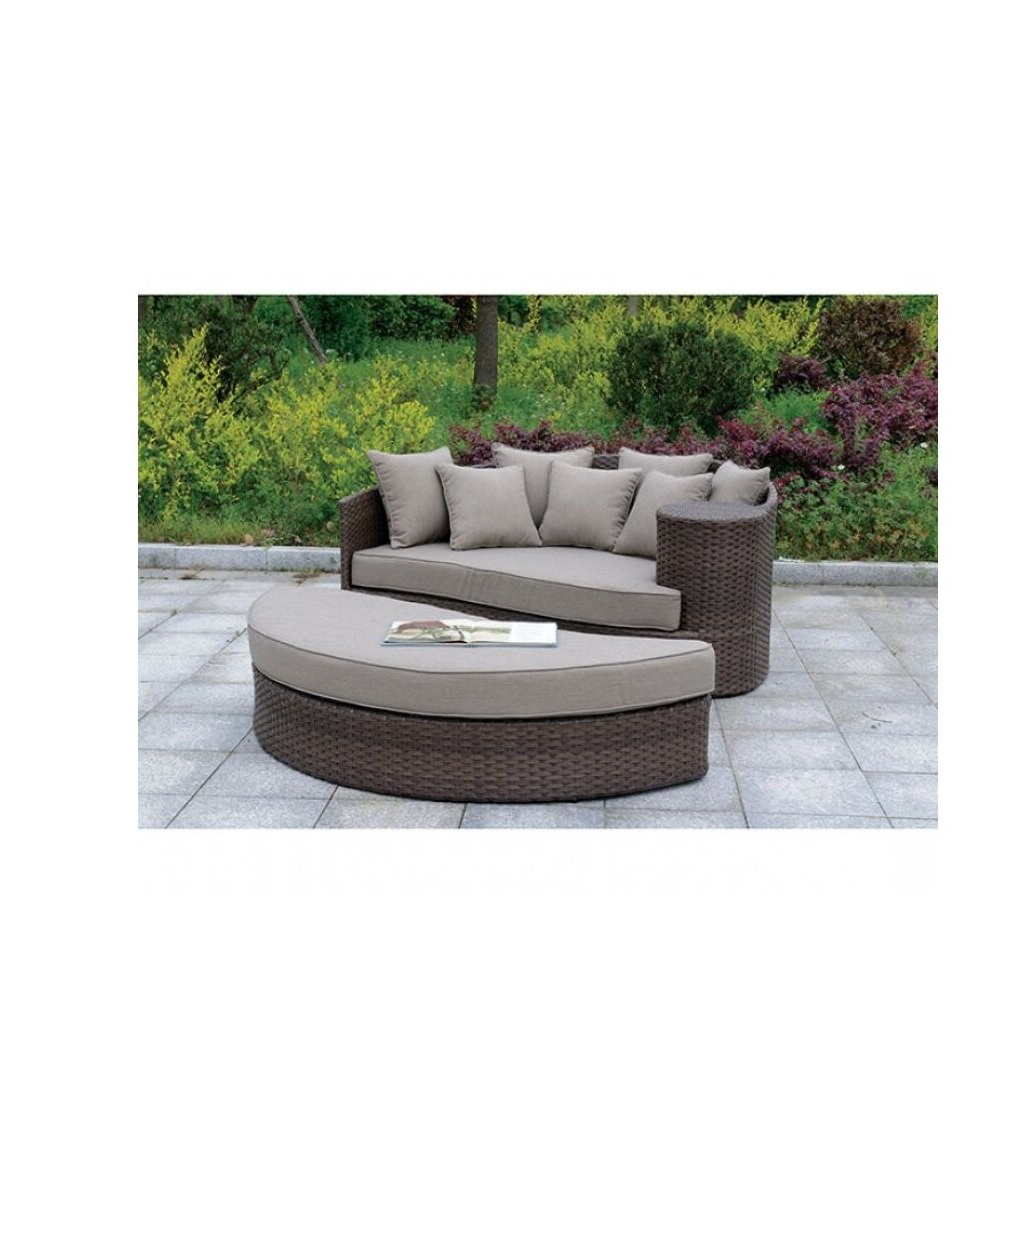 Olu Bamboo Large Round Patio Daybeds With Cushions With Widely Used Round Patio Daybed – Clubeserradeaires (View 16 of 20)